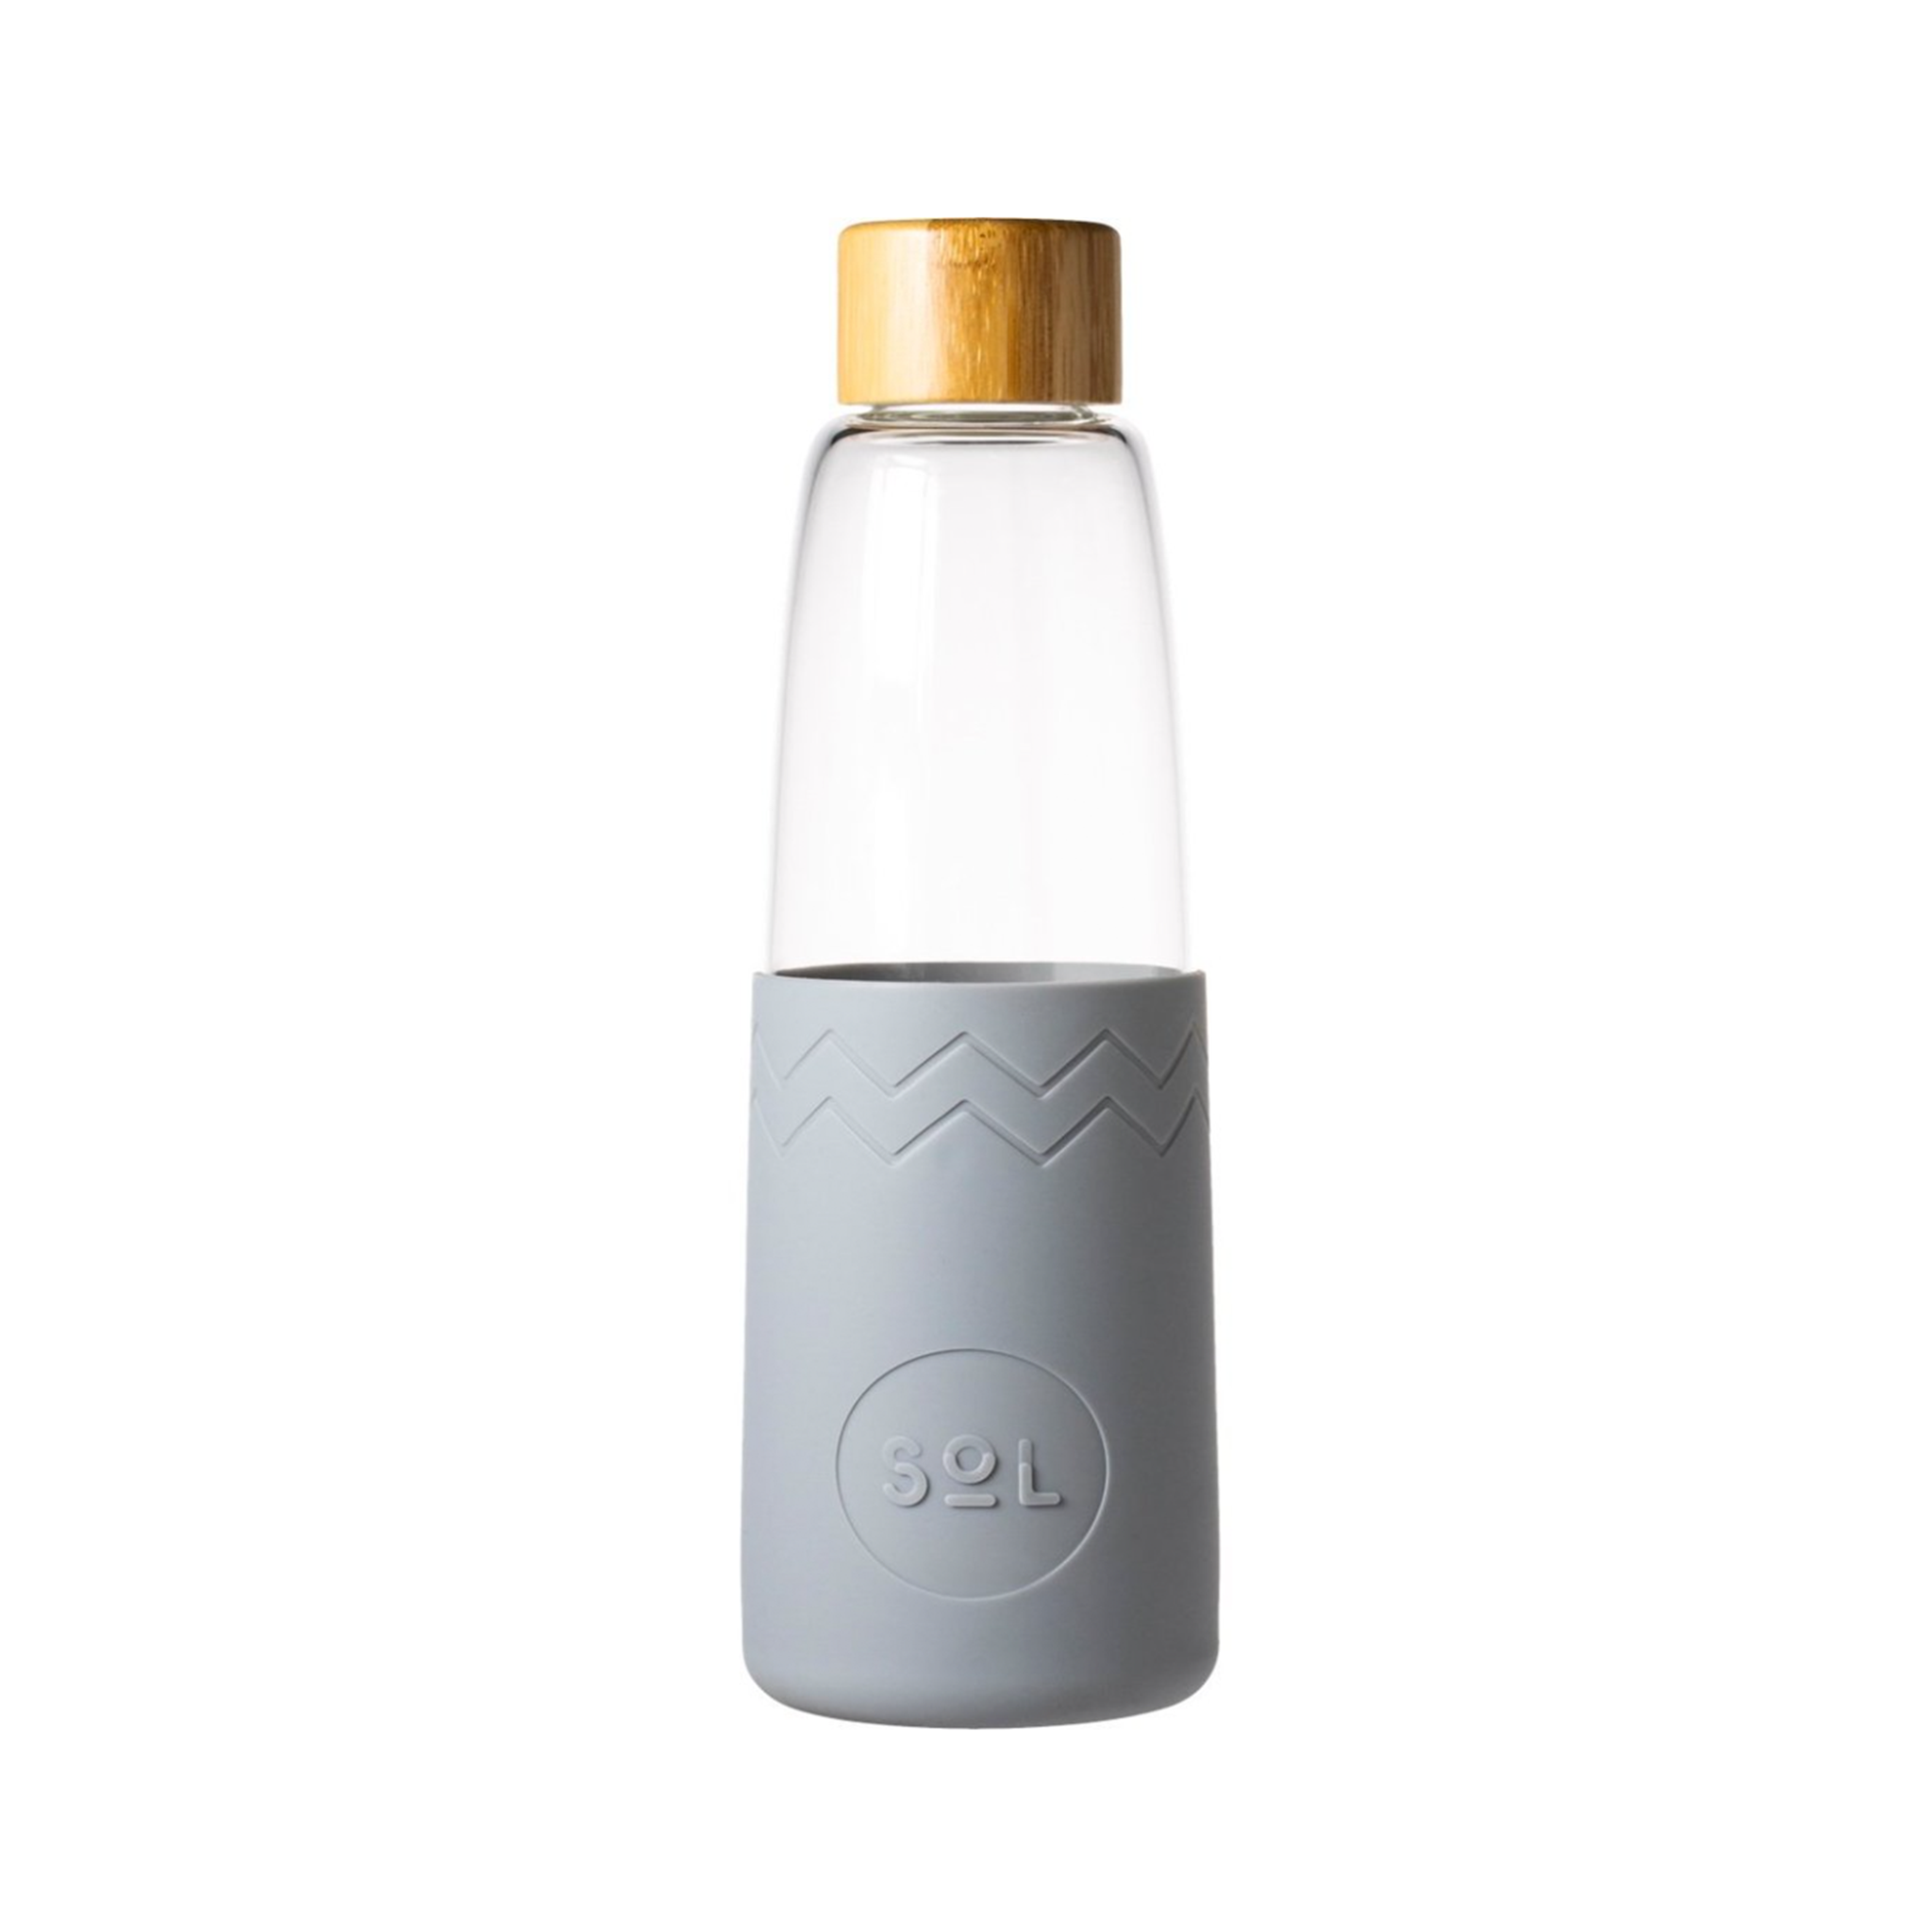 Grey SoL Glass Water Bottle